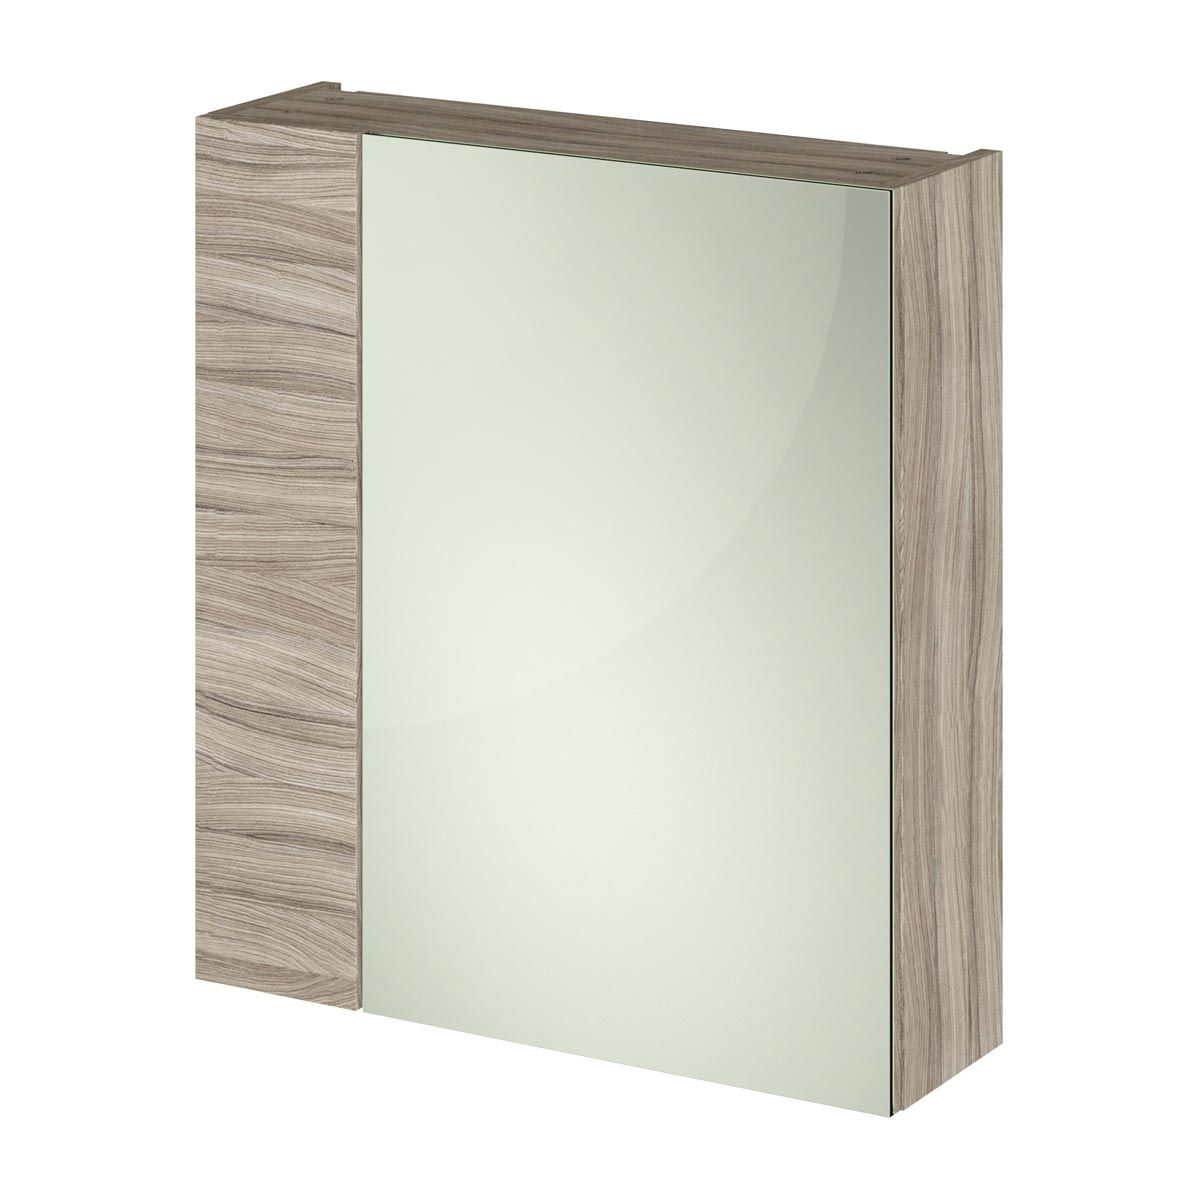 Nuie Athena Driftwood Double Mirrored Bathroom Cabinet 600mm